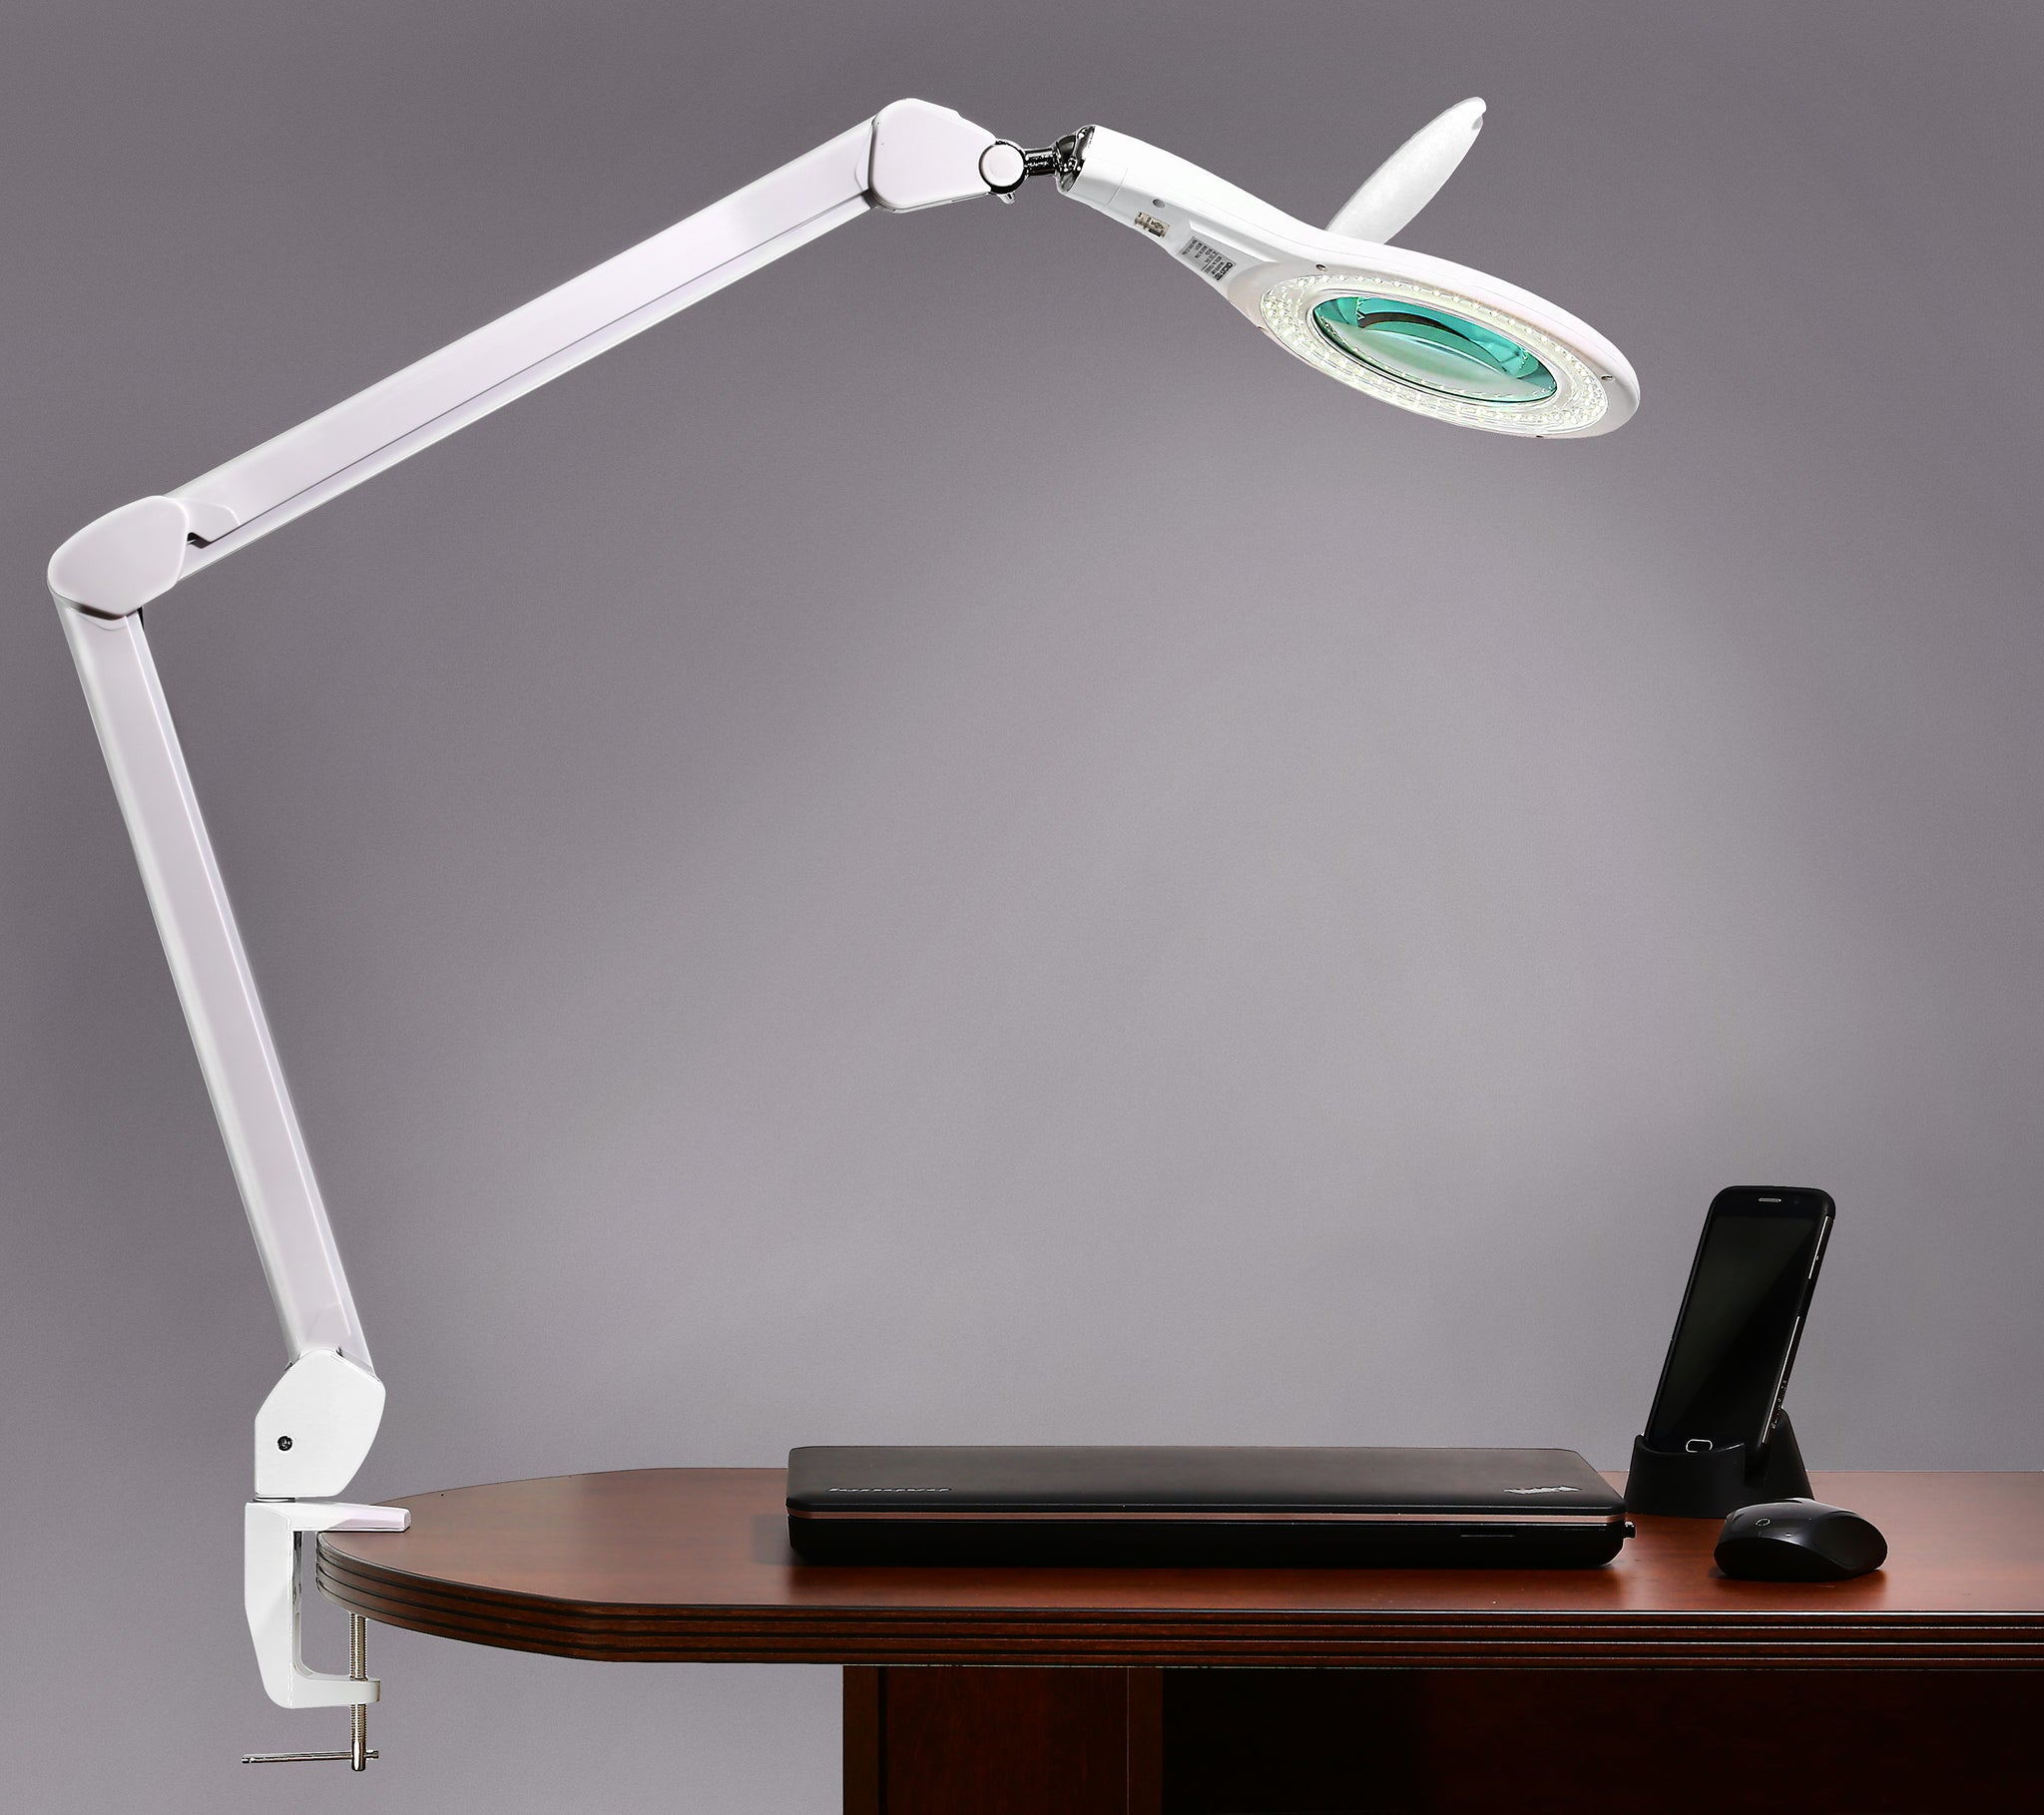 design magnifier lamp clamp breathtaking reviews magnifying light with images desk led